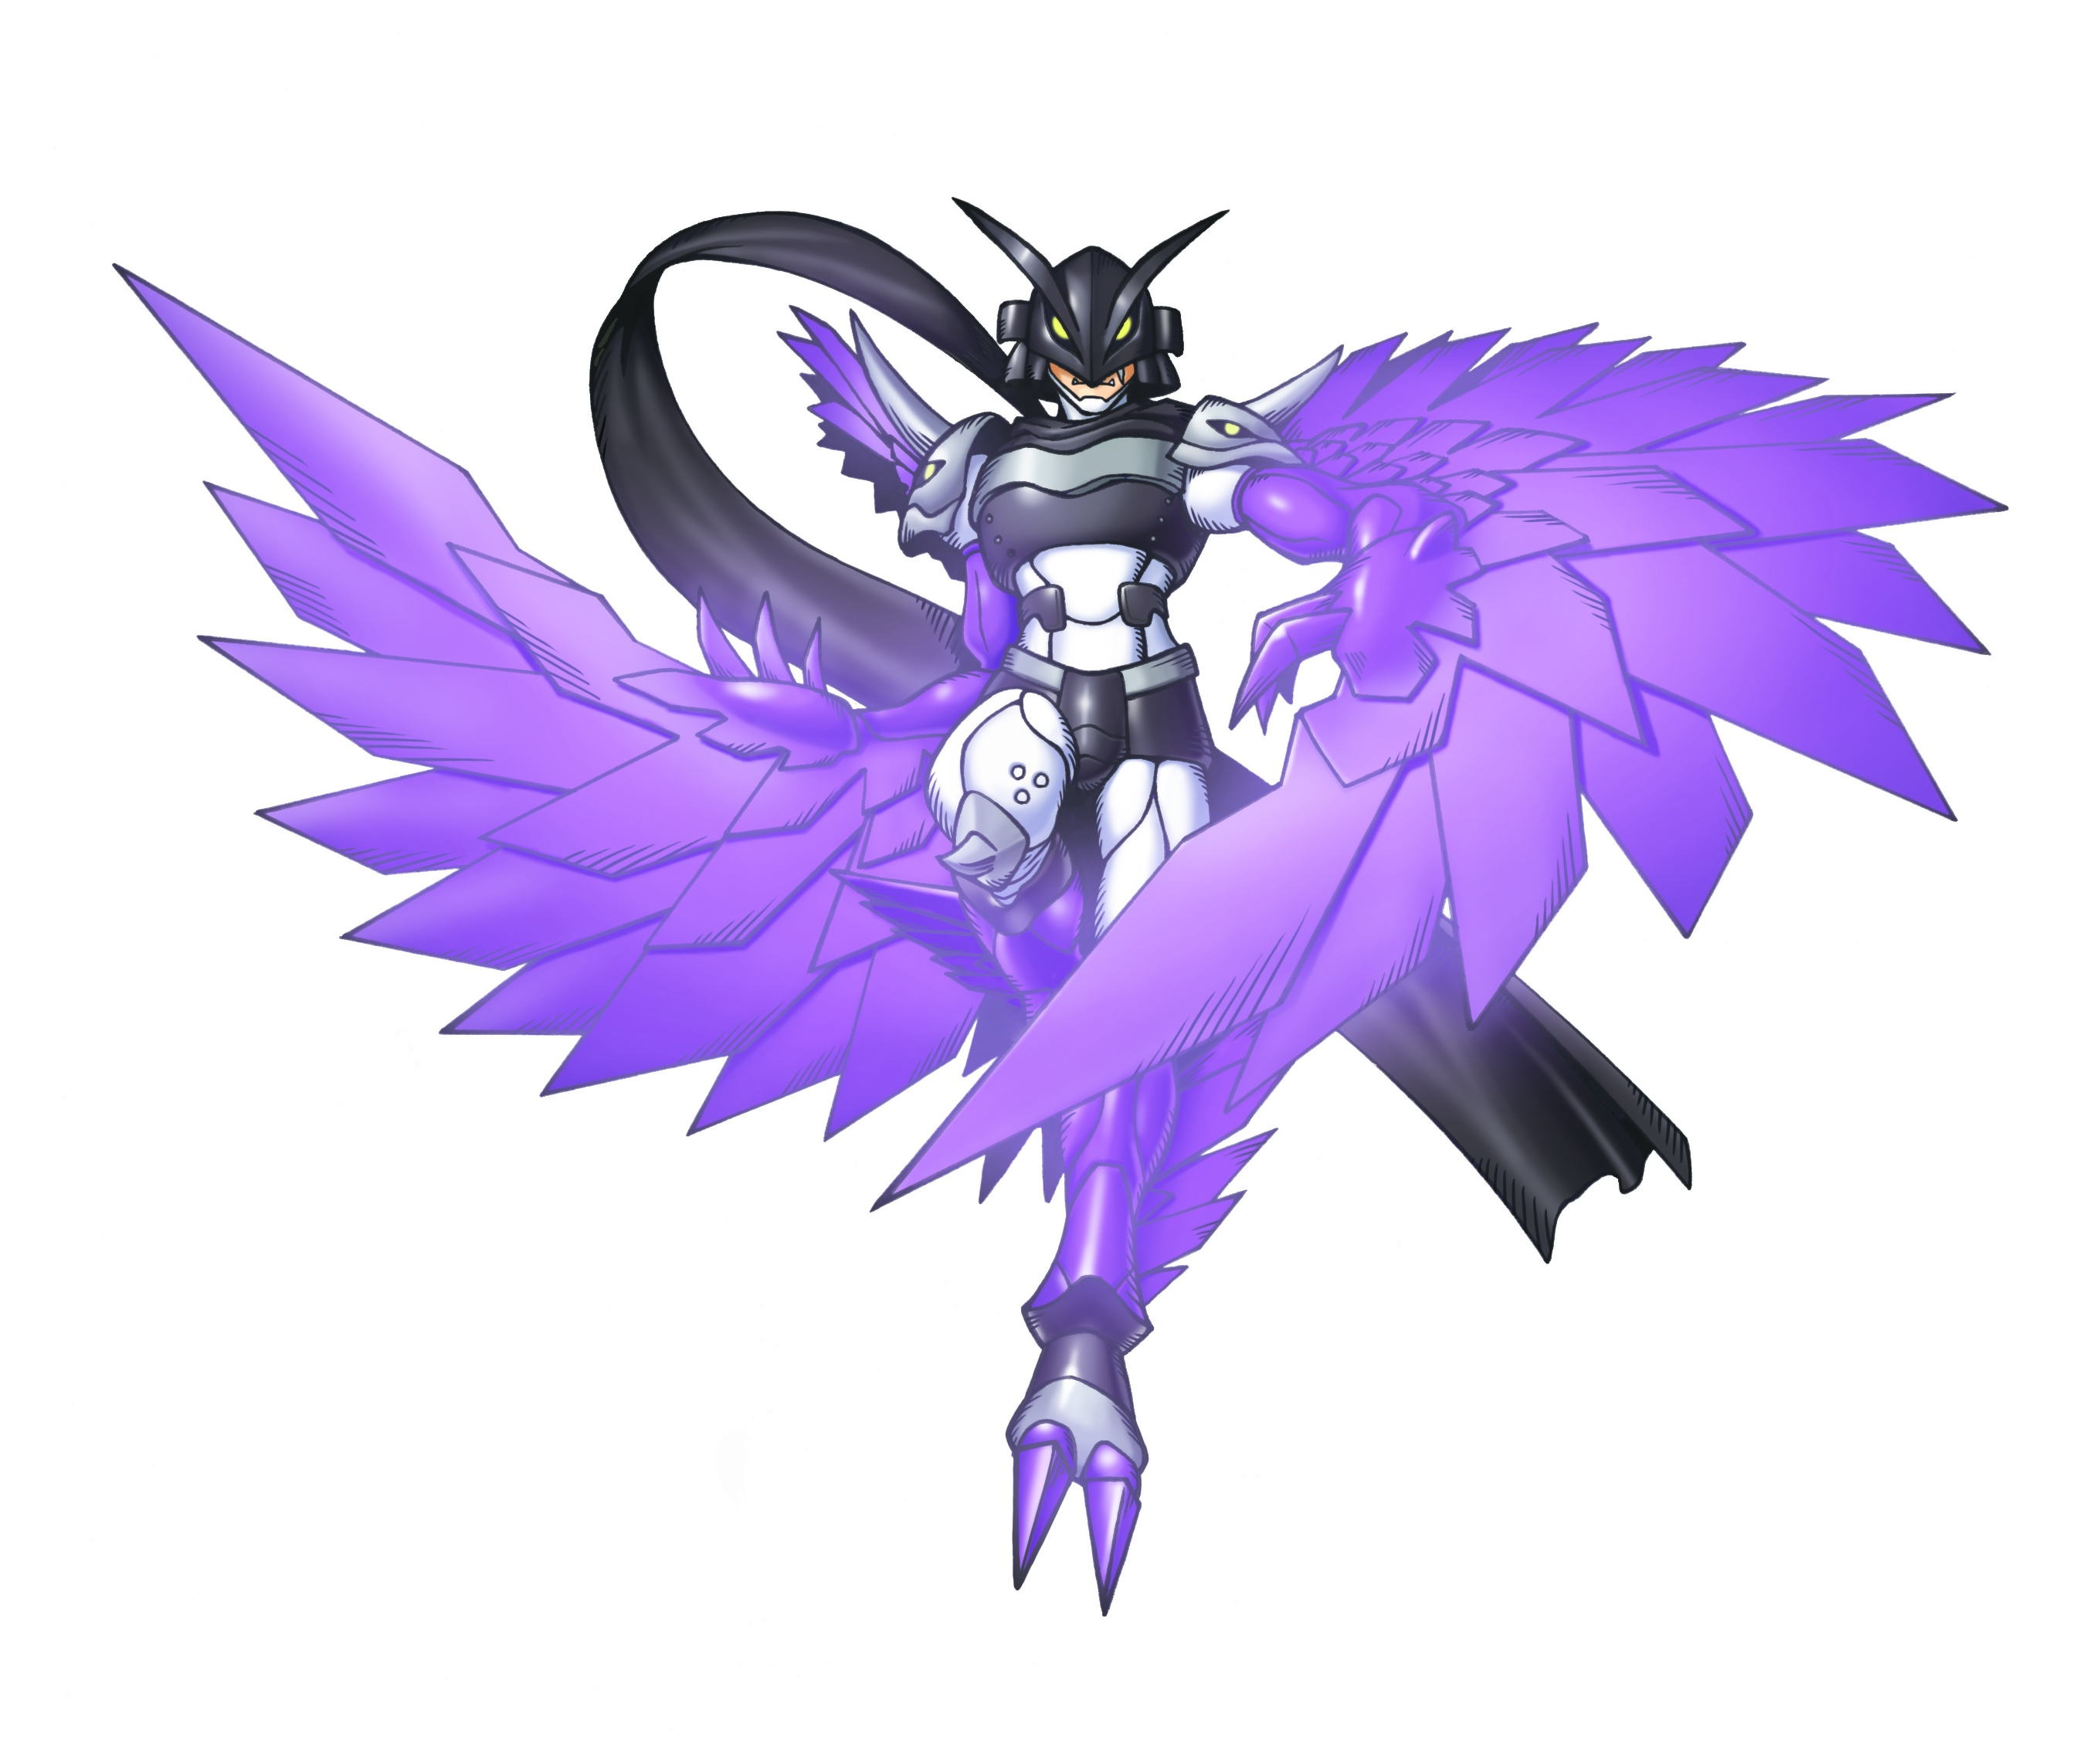 New Free To Download Digimon For Digimon Story Cyber